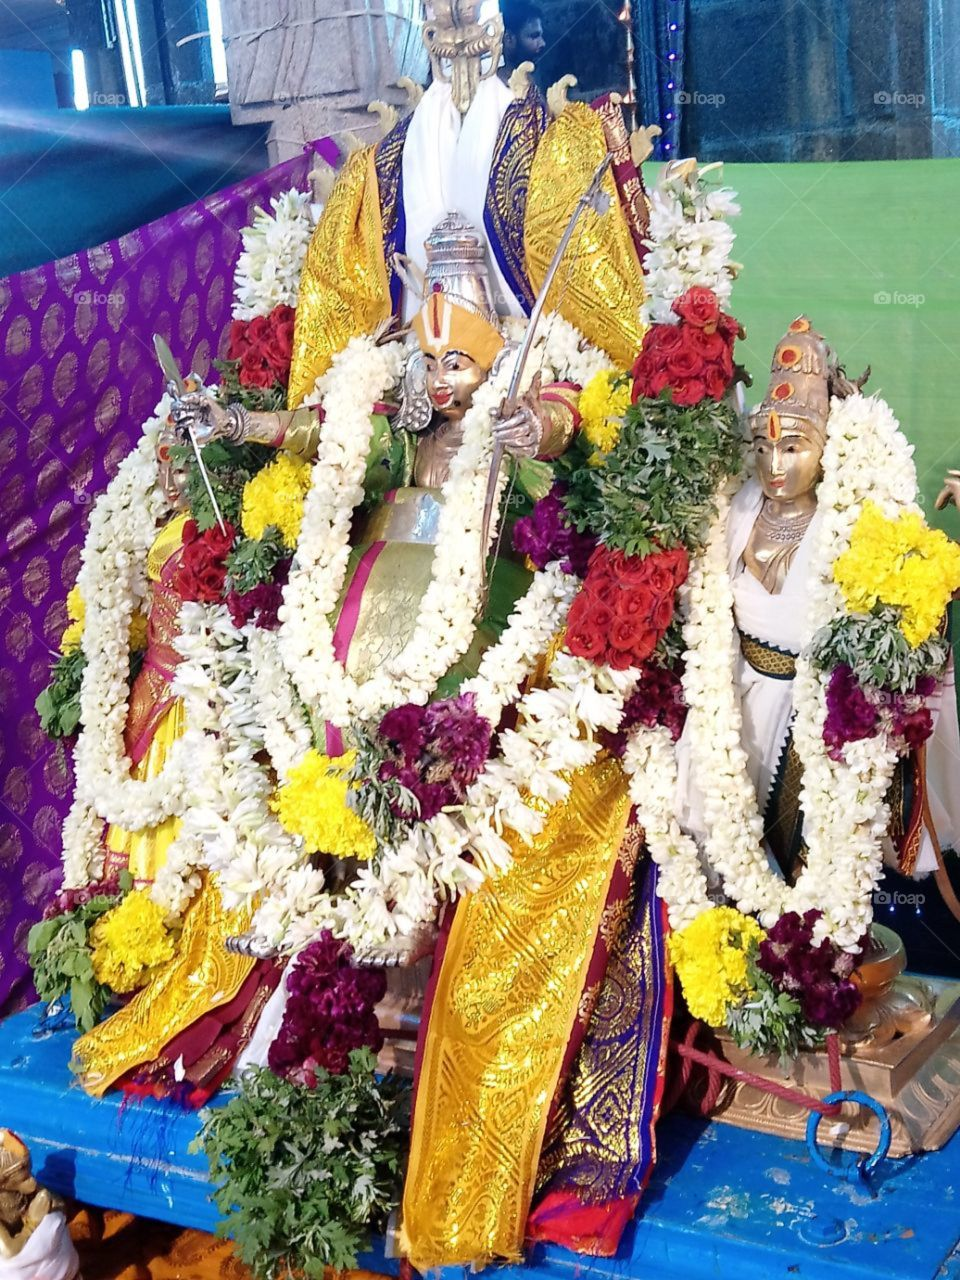 This is god Ramaswamy with Sita and Lakshman.God Ramaswamy wish we always and give positive energy to all.